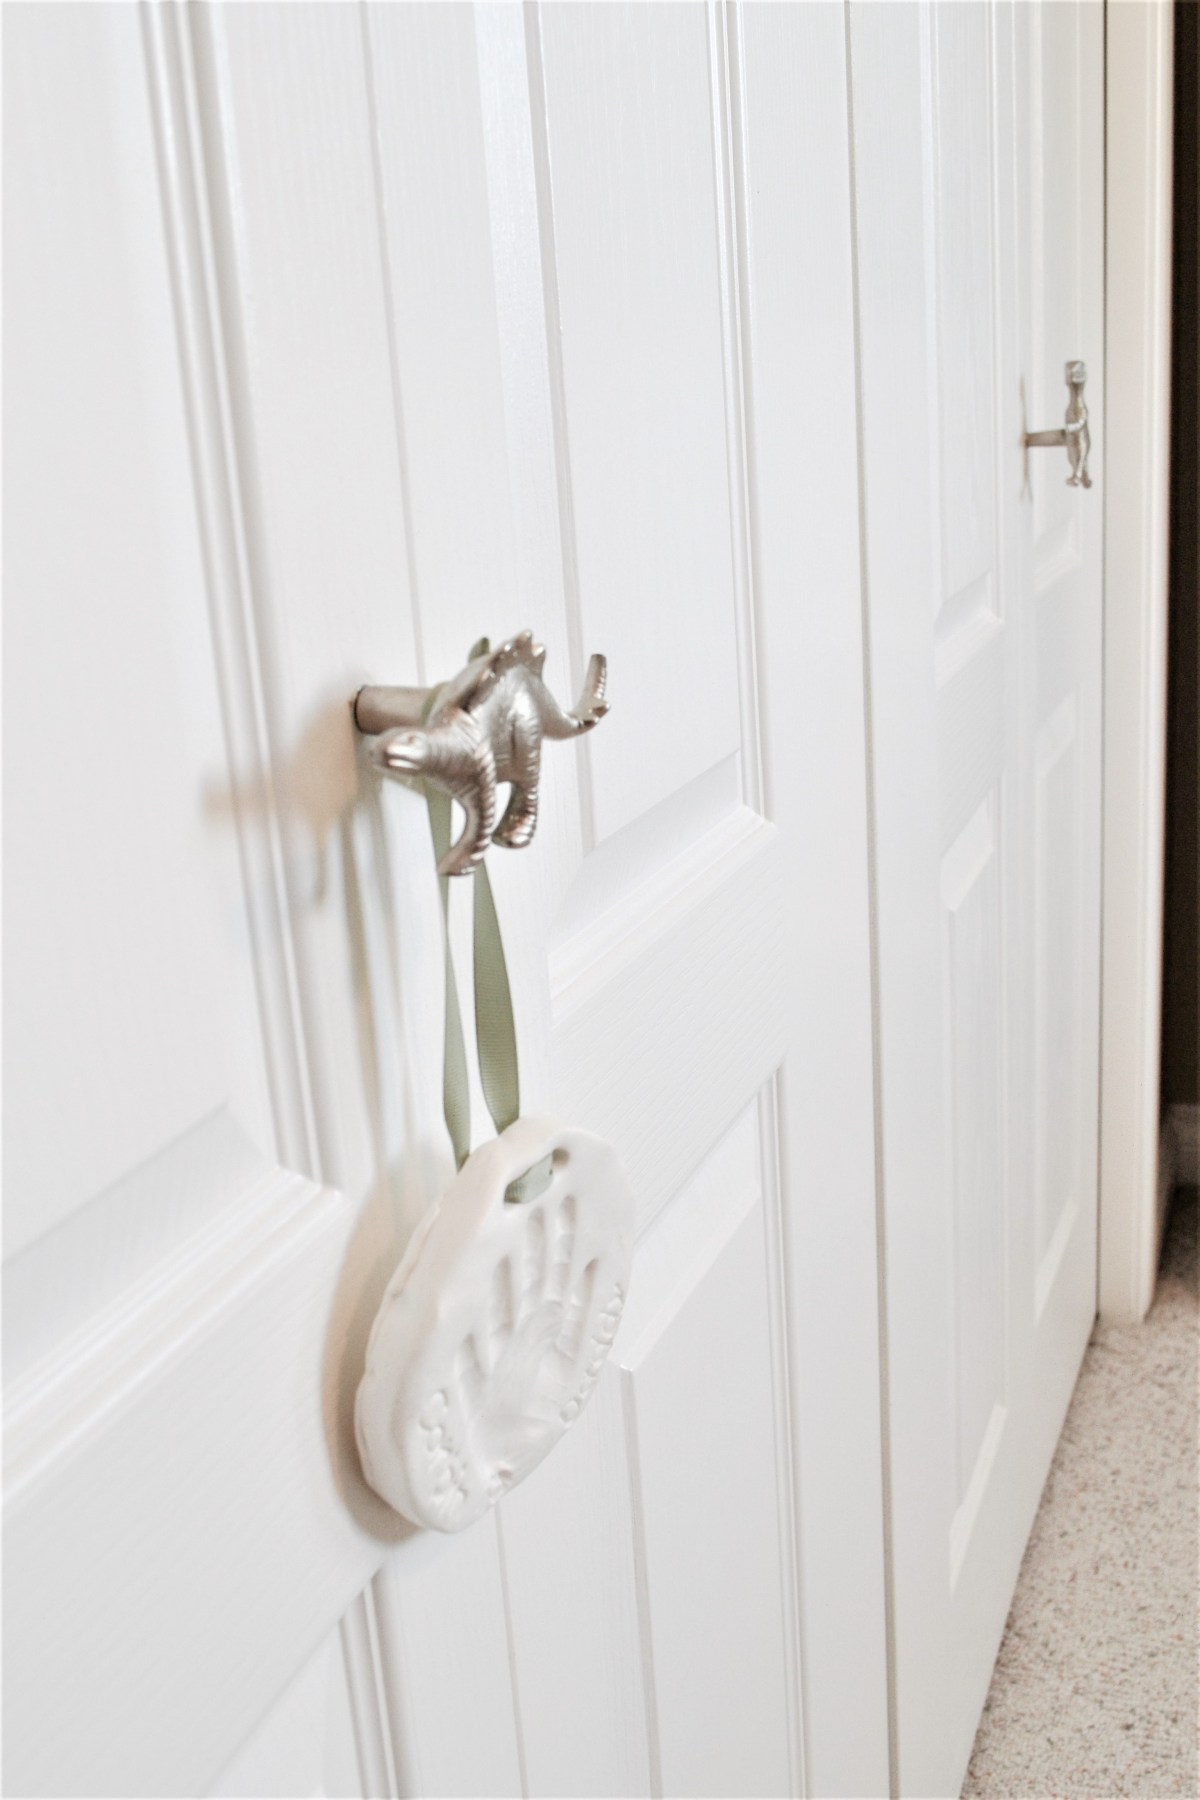 How to decorate your kids room with silver accents - dino closet knobs